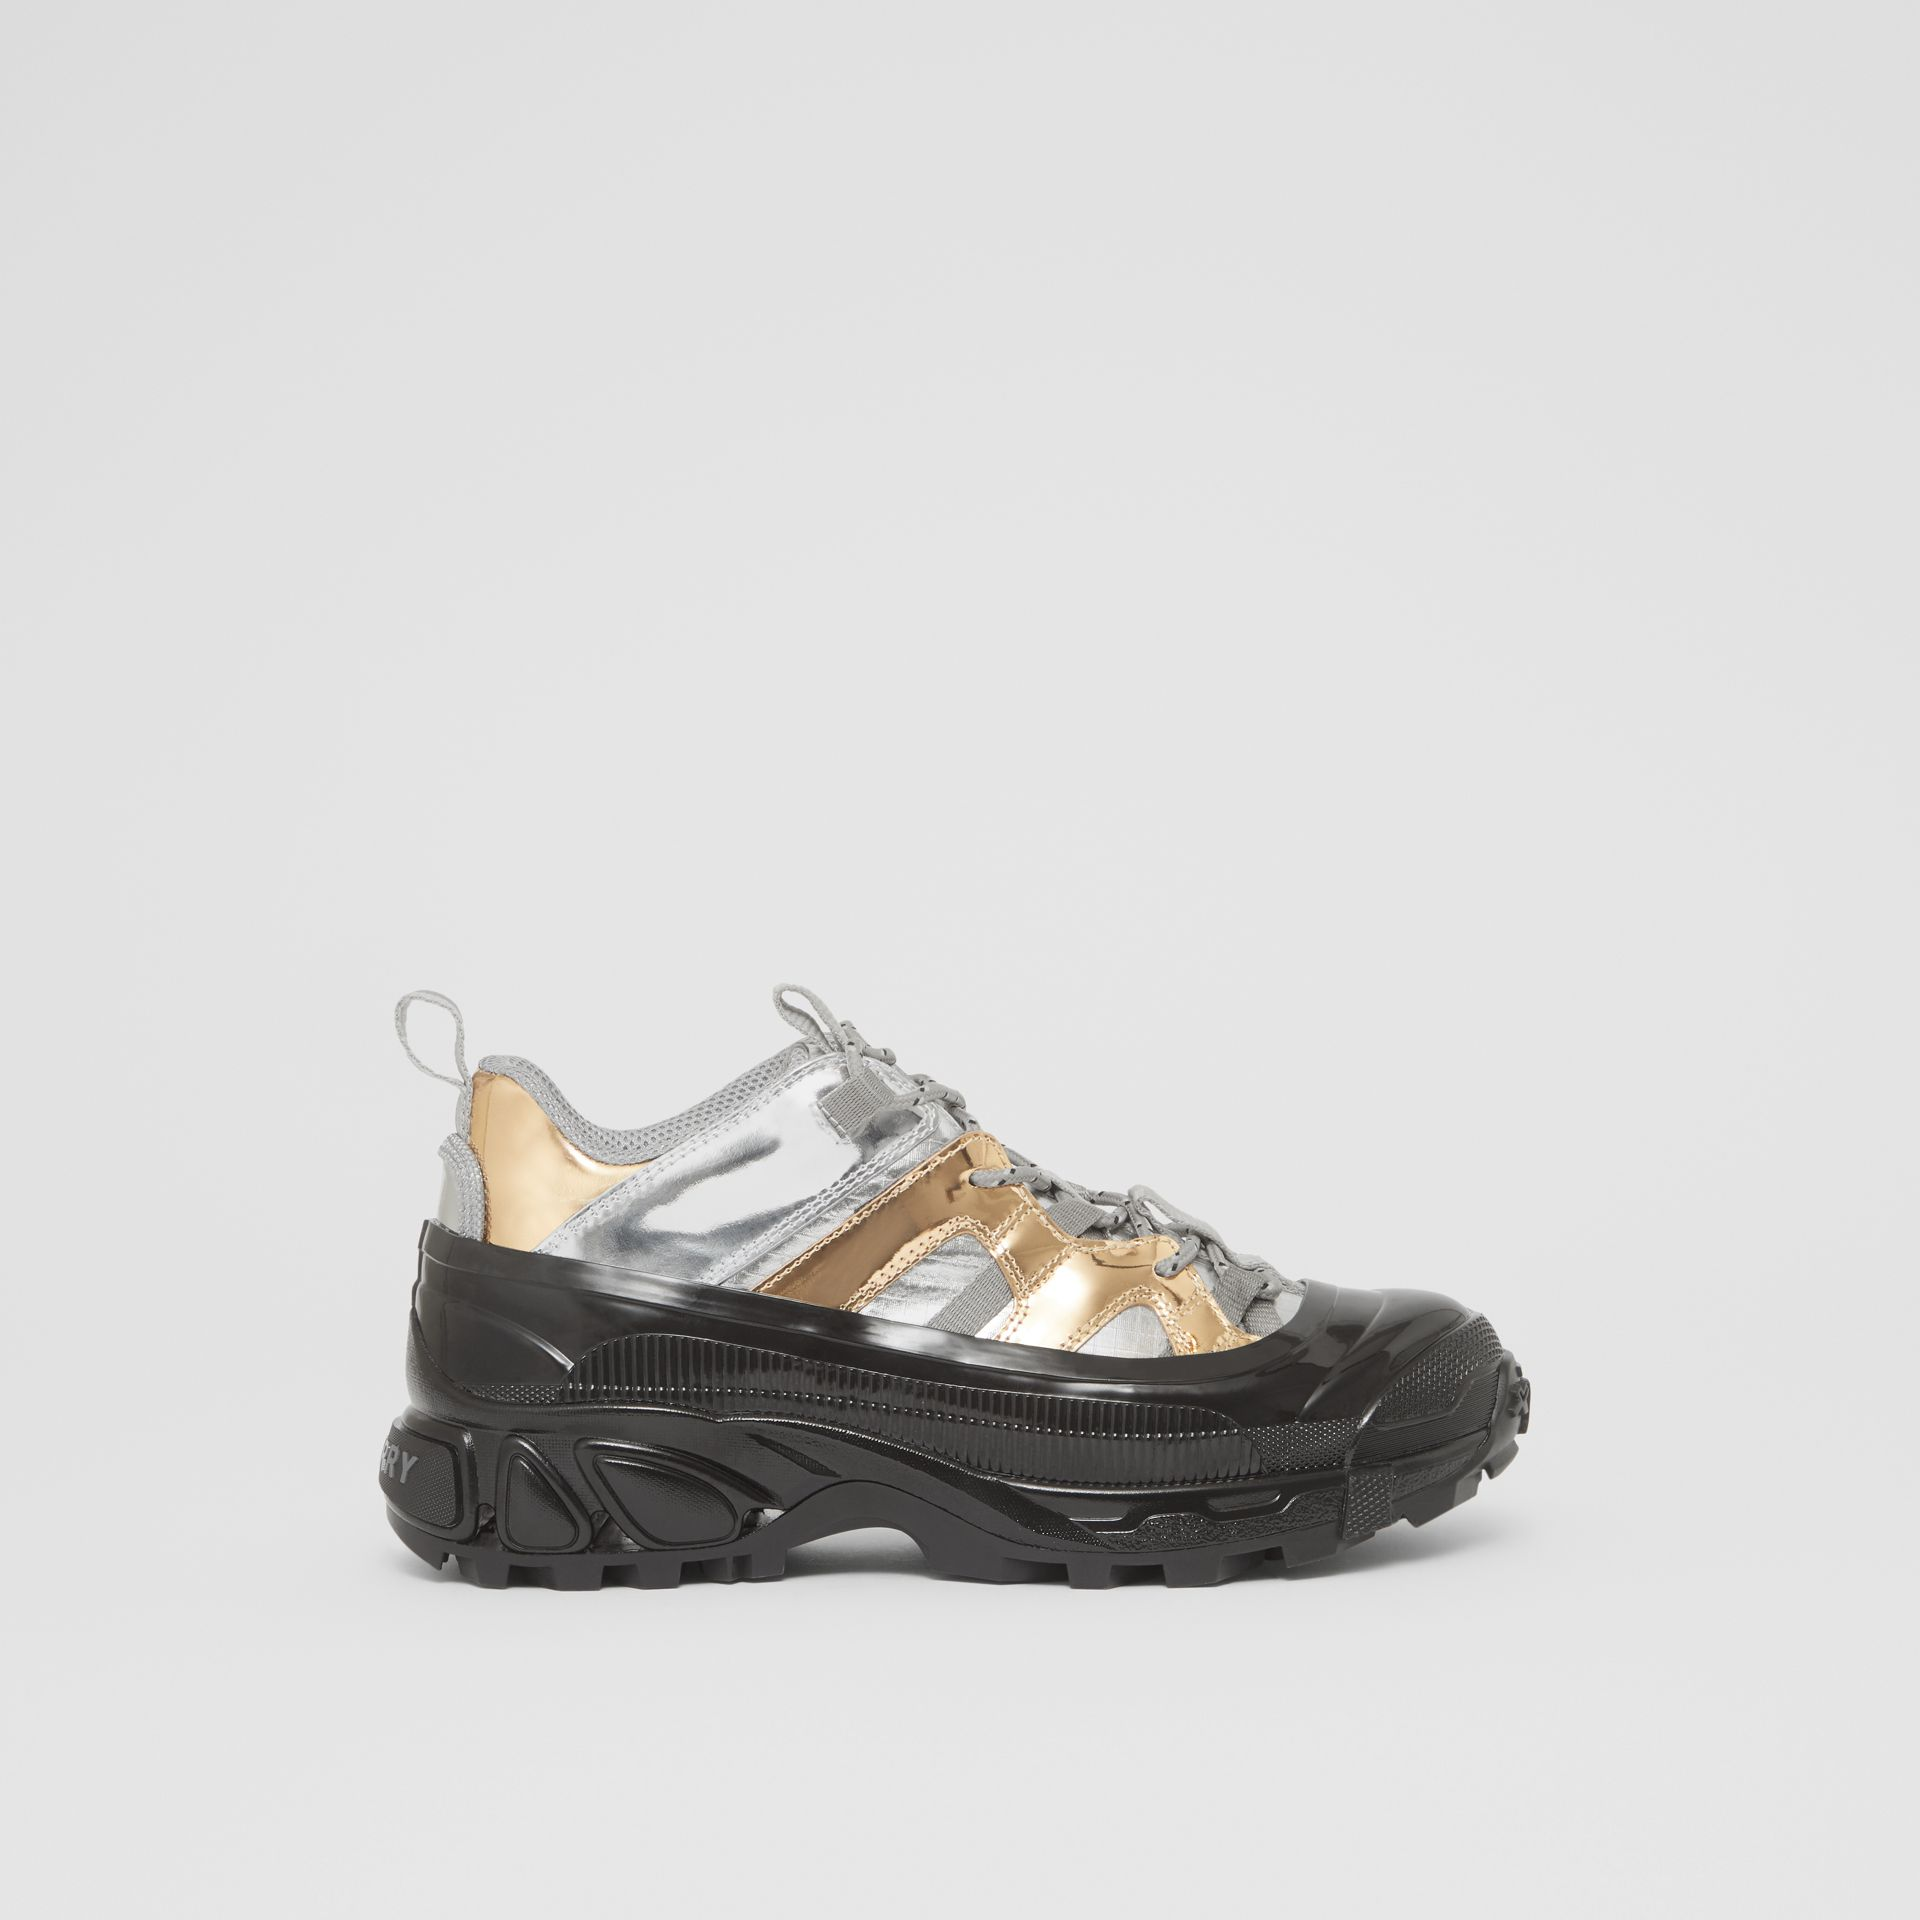 Two-tone Metallic Leather Arthur Sneakers in Silver/gold - Women   Burberry - gallery image 5